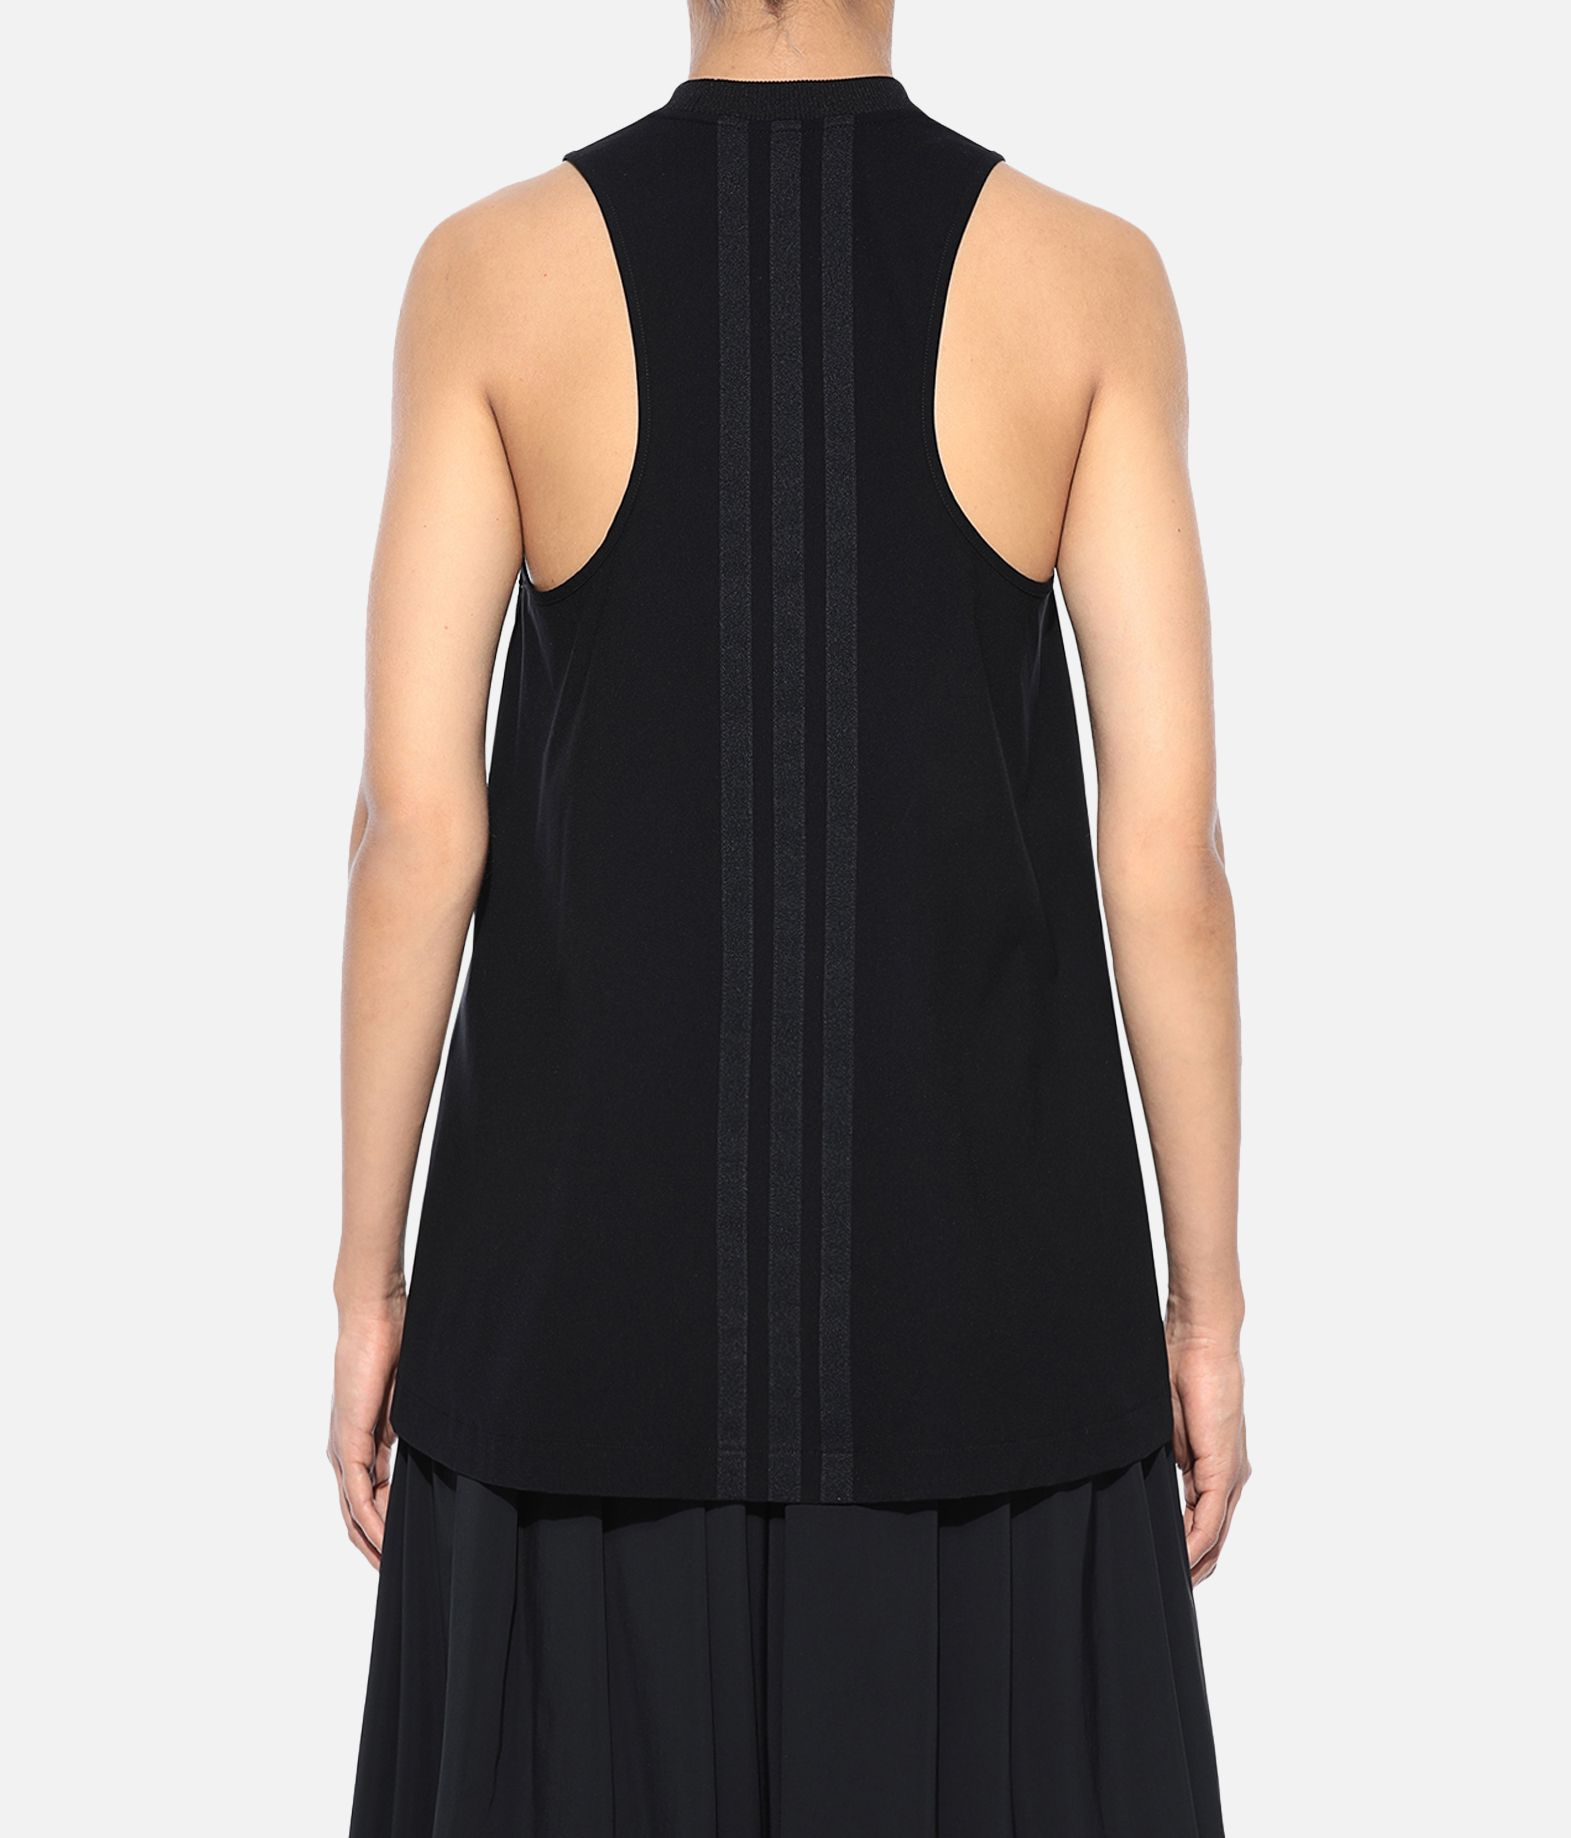 Y-3 Y-3 Light 3-Stripes Tank Top Top Woman d